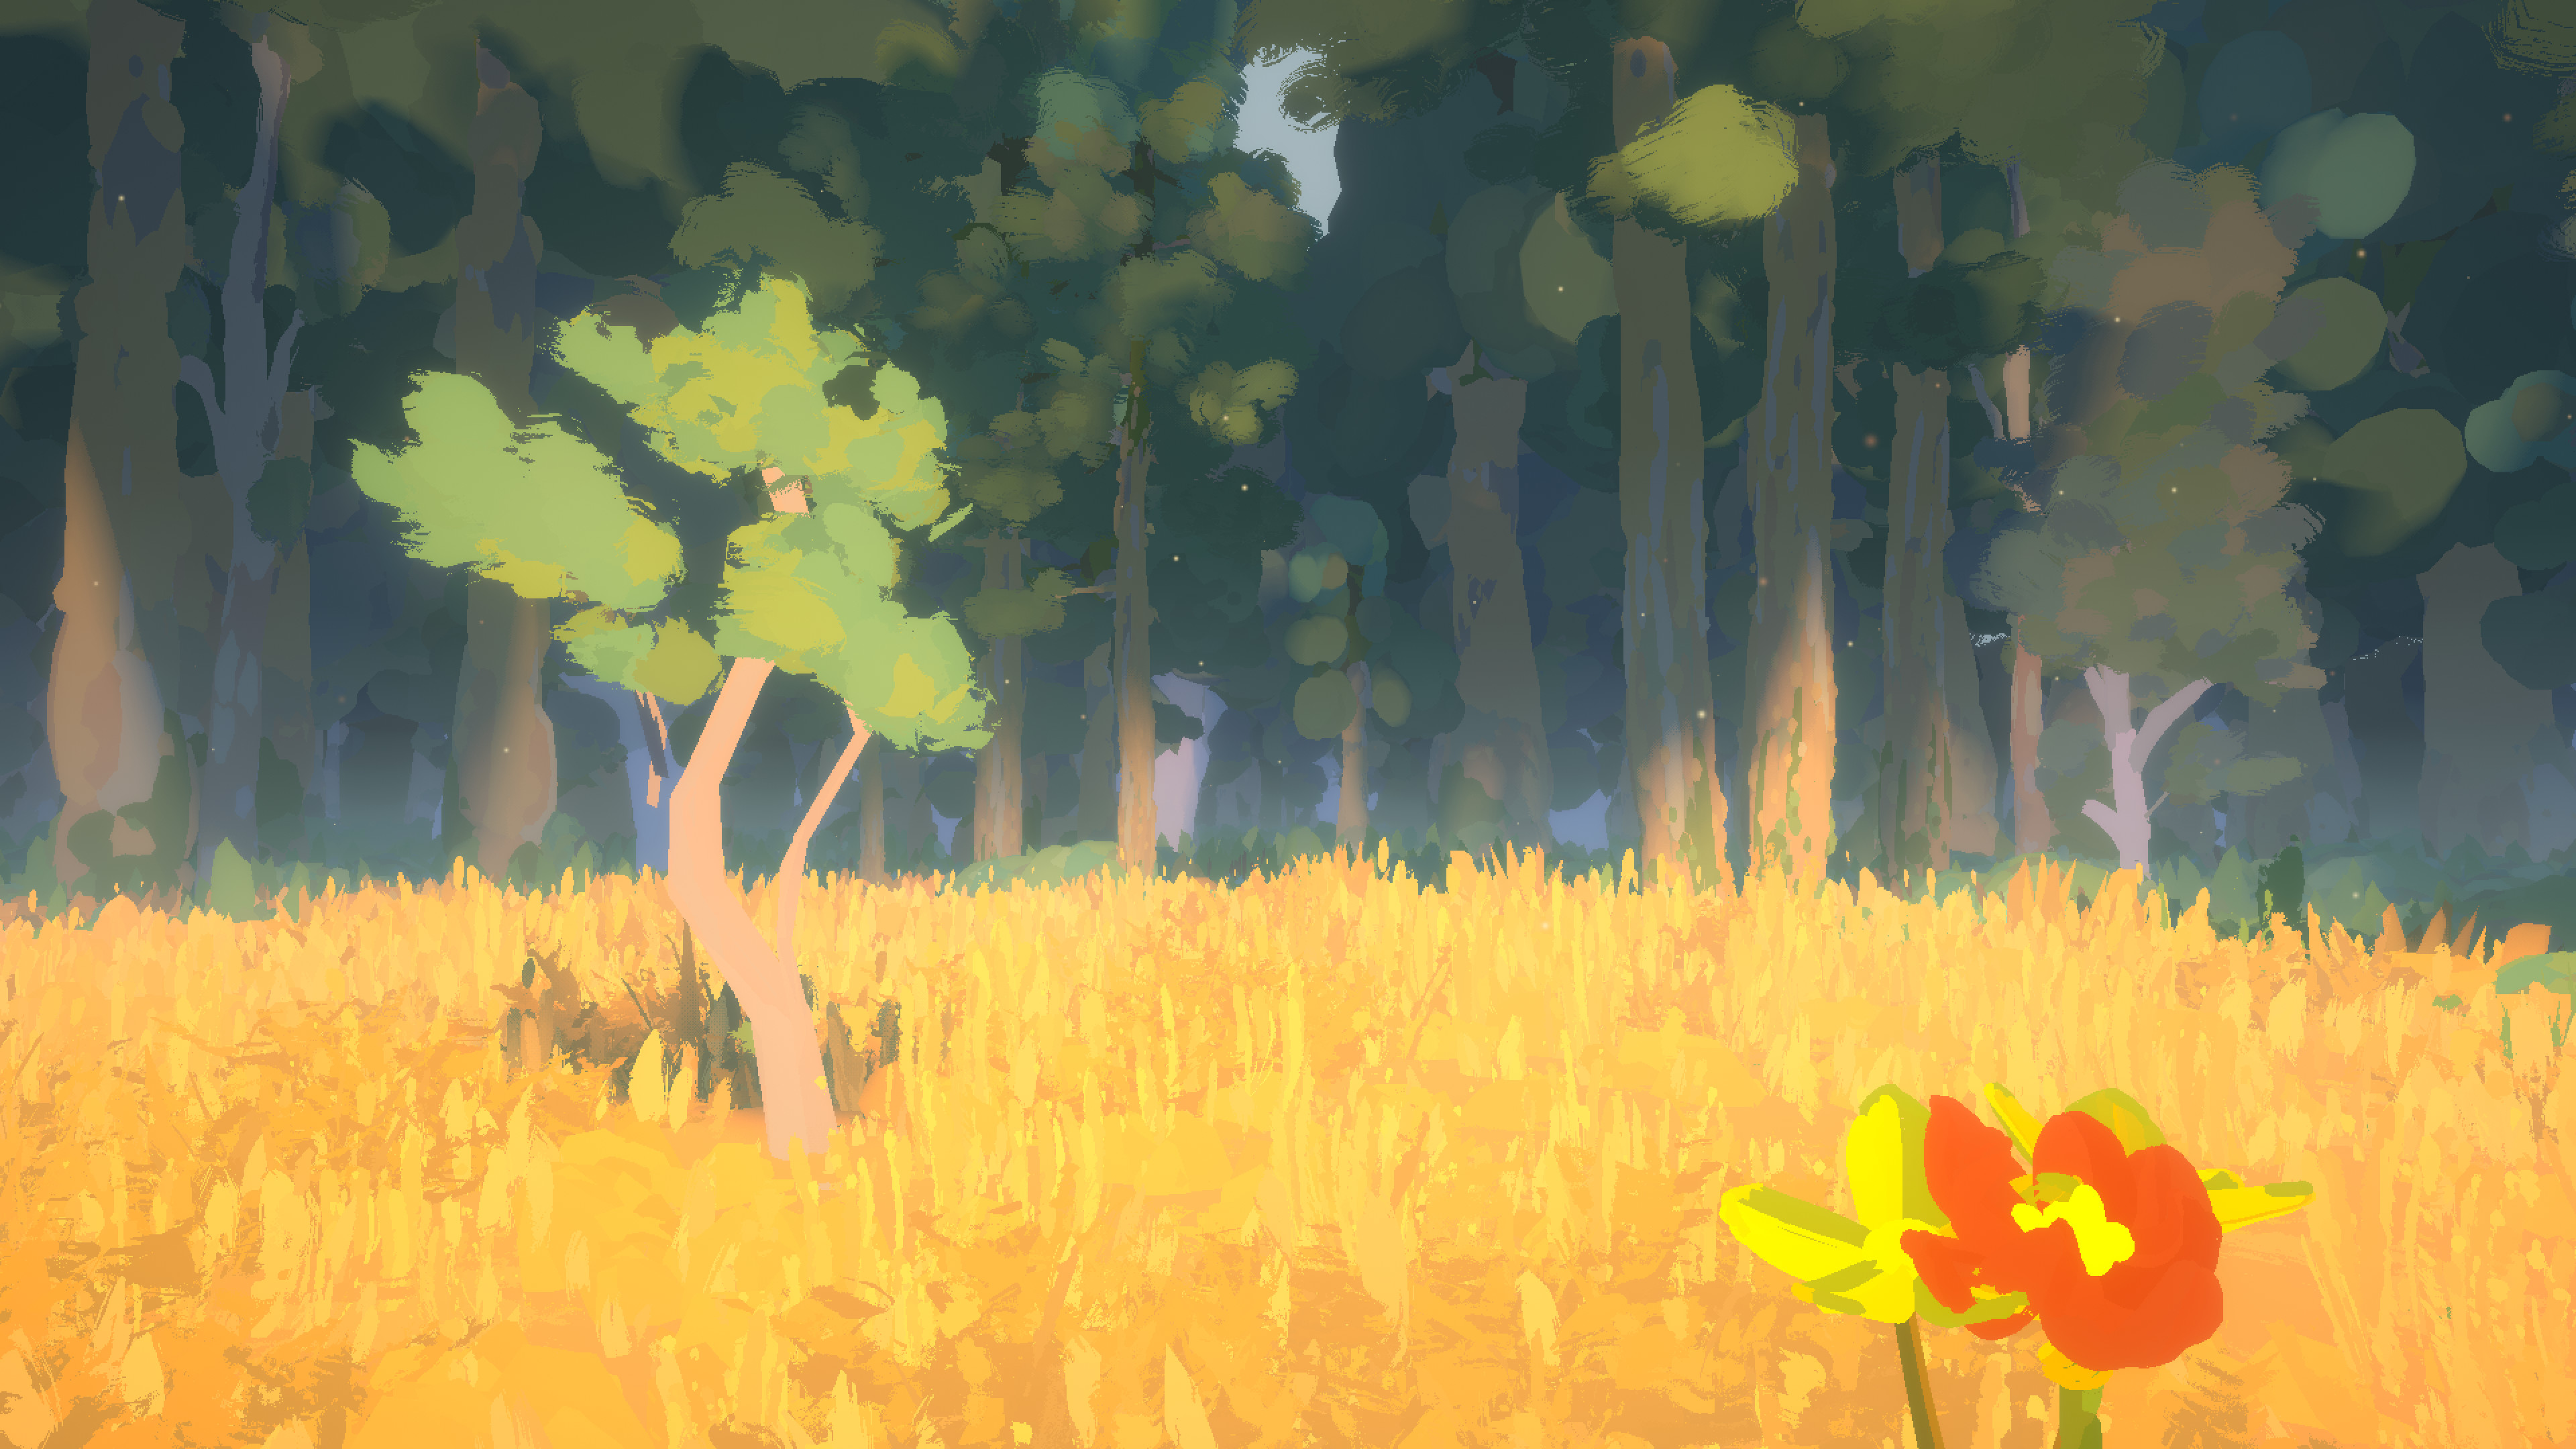 A screenshot from Sunlight that shows a tree in the distance and some flowers up close in the bottom right-hand corner